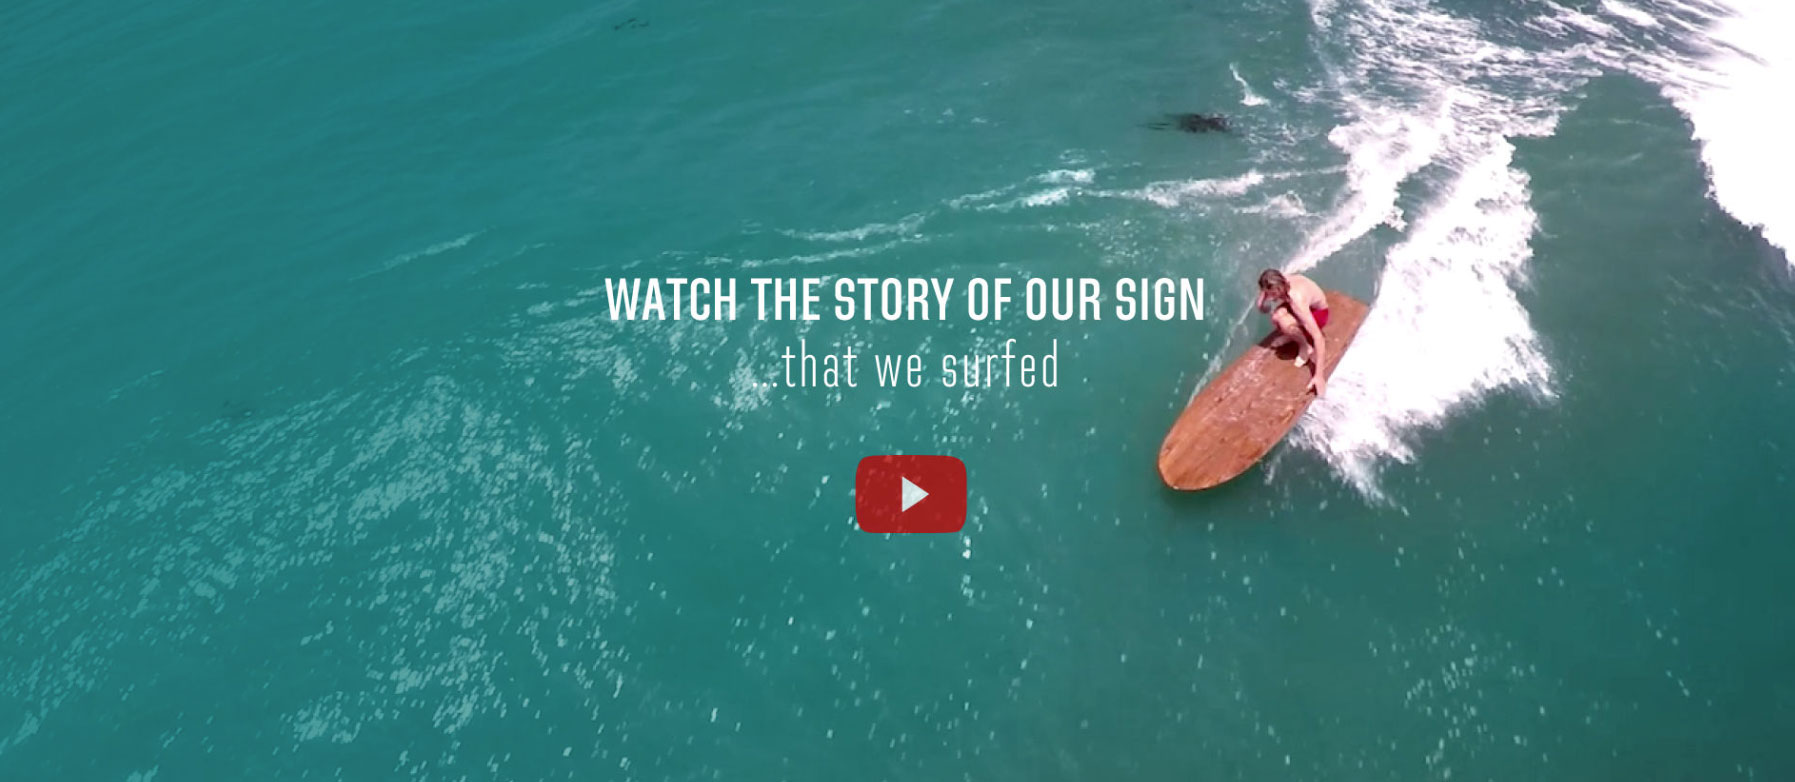 Watch the story of our sign that we surfed with youtube play button